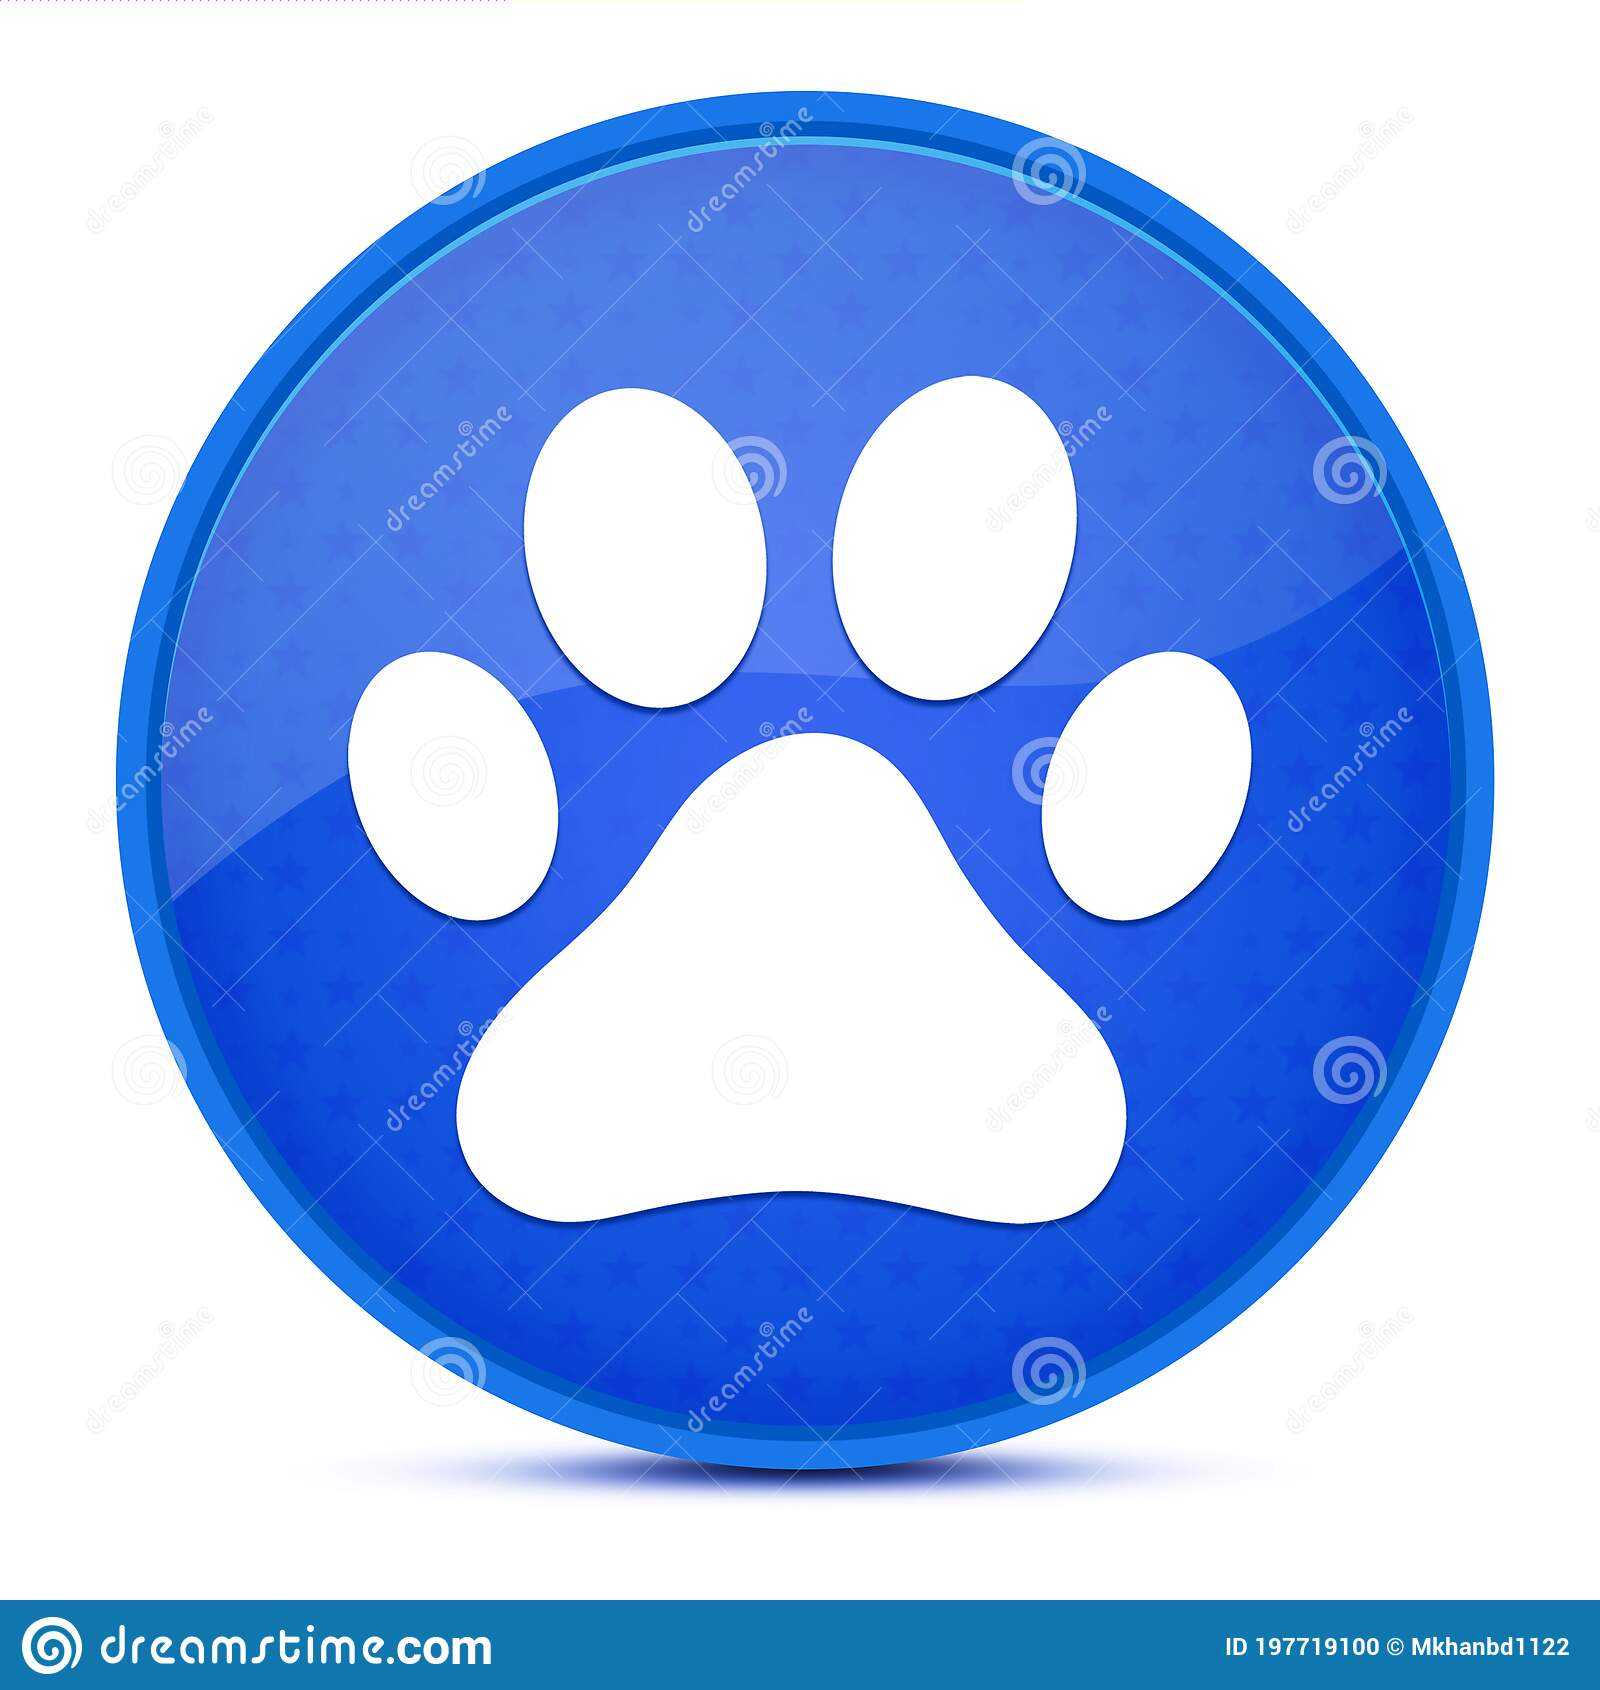 Dog Or Cat Paw Print Aesthetic Glossy Blue Round Button Abstract Stock Illustration Illustration Of Moggie Puppy 197719100